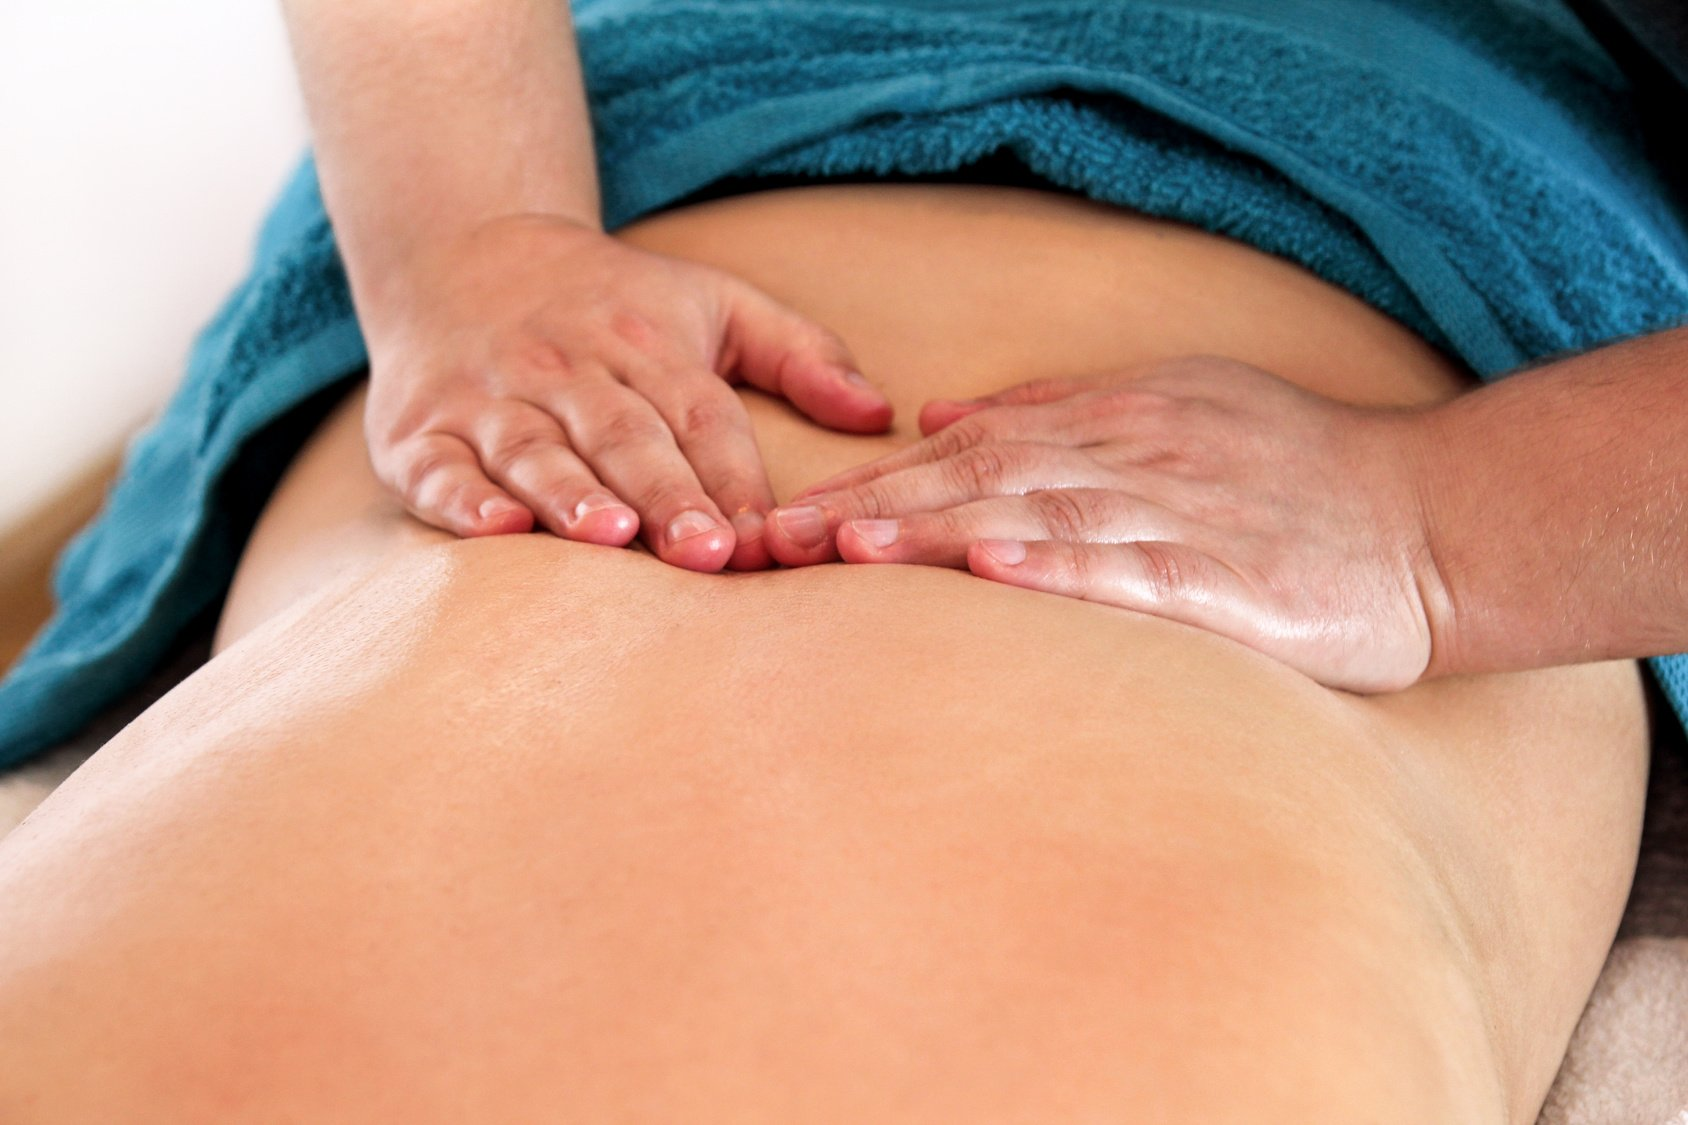 Massage relax studio. Massage back. Young woman receiving back massage at spa. Masseuse hands massaging female back.